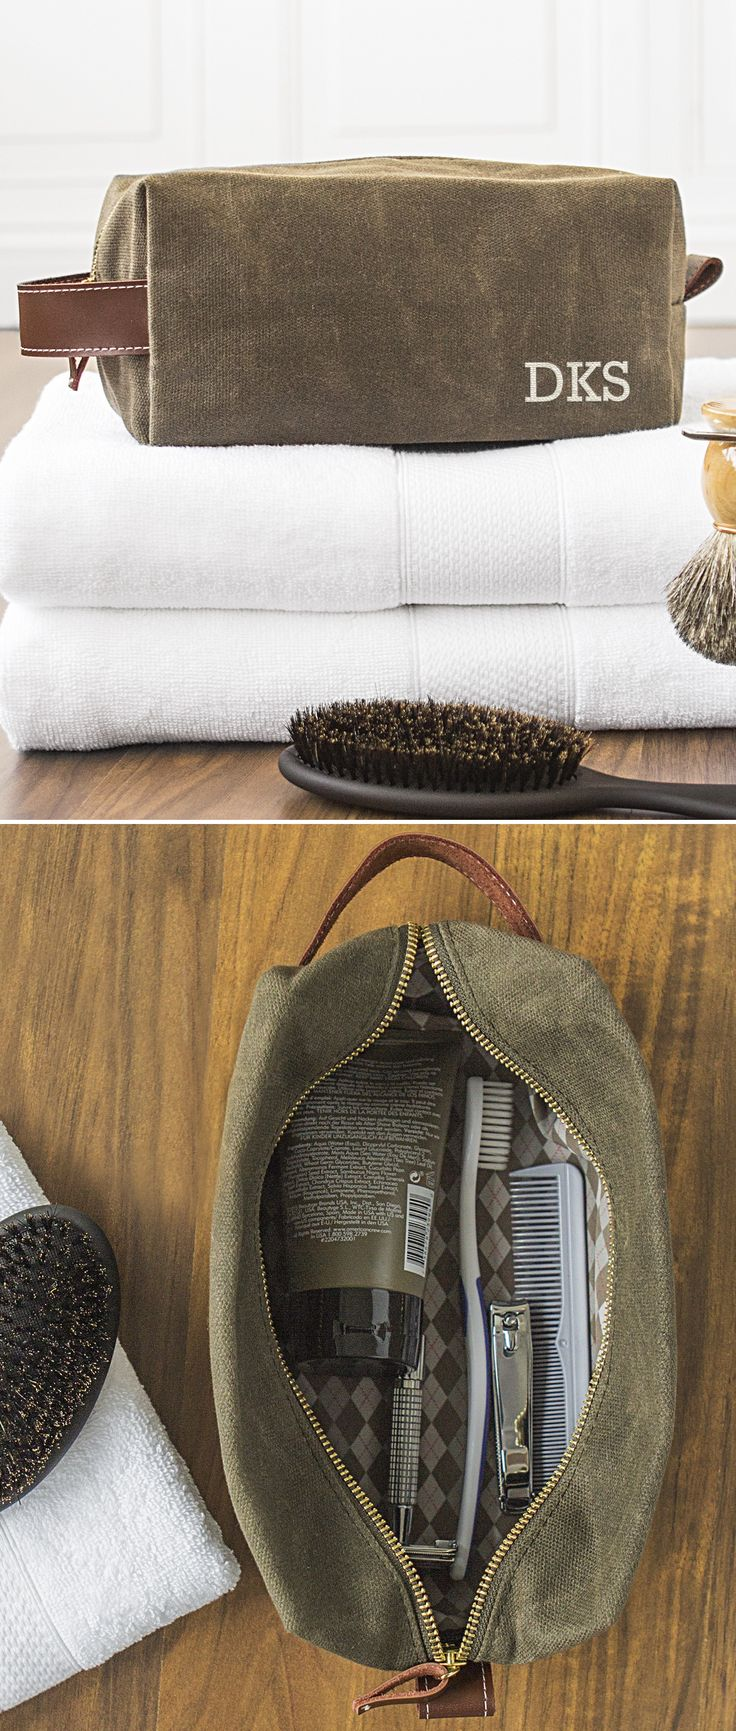 Men's toiletry bags make a useful gift for the guy on your birthday, Christmas, anniversary or just because gift list. Turn each toiletry bag into a dopp kit by adding a few items he is will need when traveling like a lint brush, soap and toothbrush case. Add his favorite shaving cream, aftershave, soap and razors to complete his personal grooming needs. This waxed canvas toiletry travel bag is personalized with three initials for a unique travel dopp kit any guy on your gift list will love.